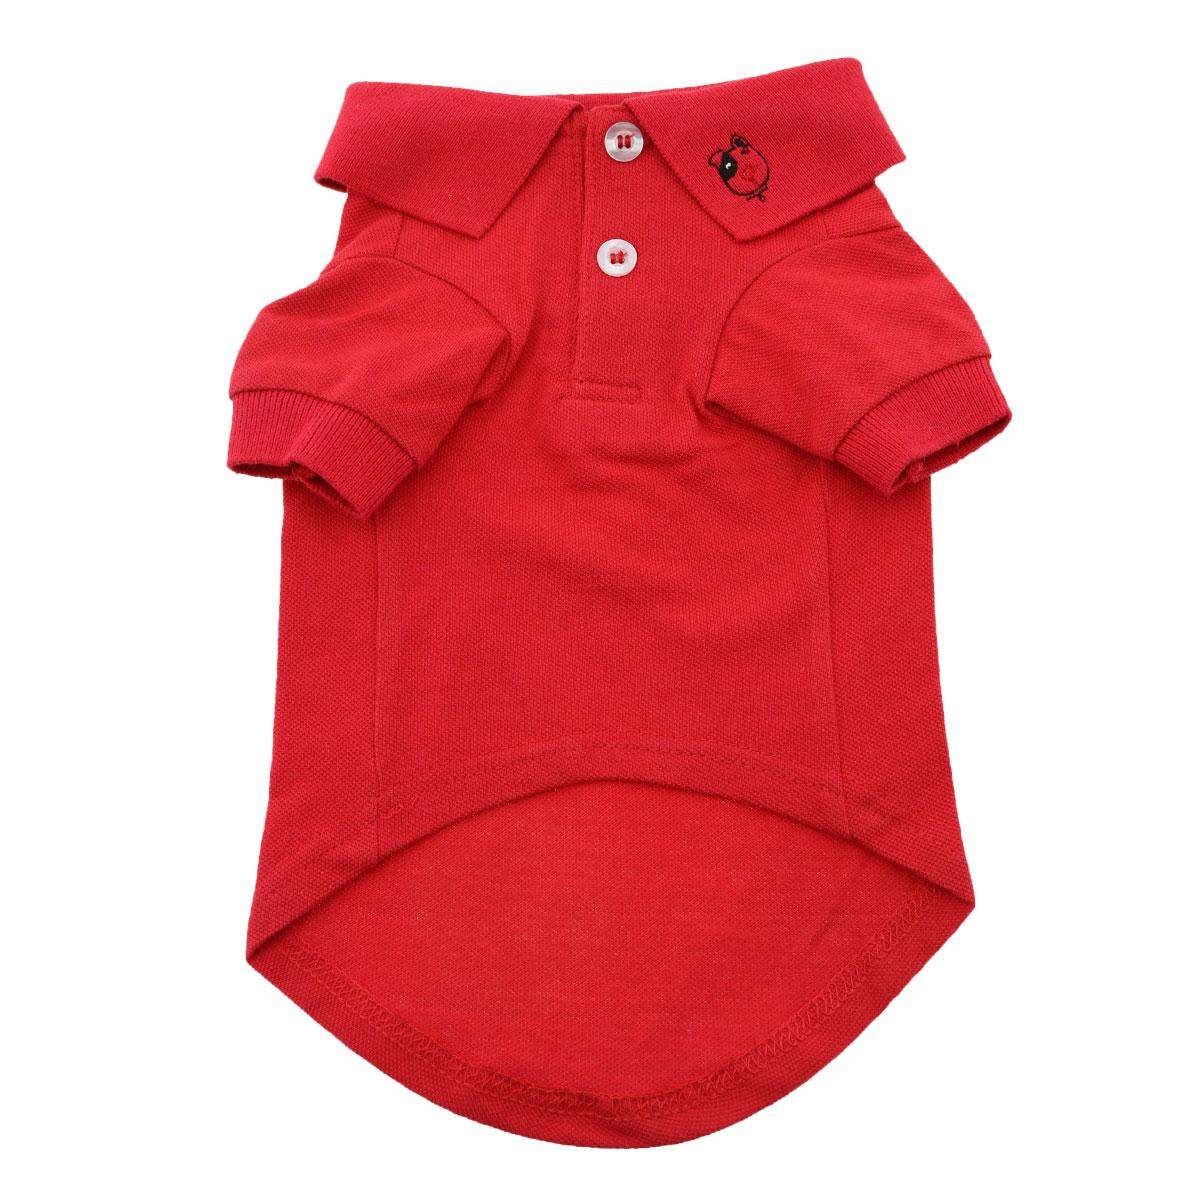 Doggie Design Polo Shirt for Dogs, Solid Flame Scarlet Red, XX-Large